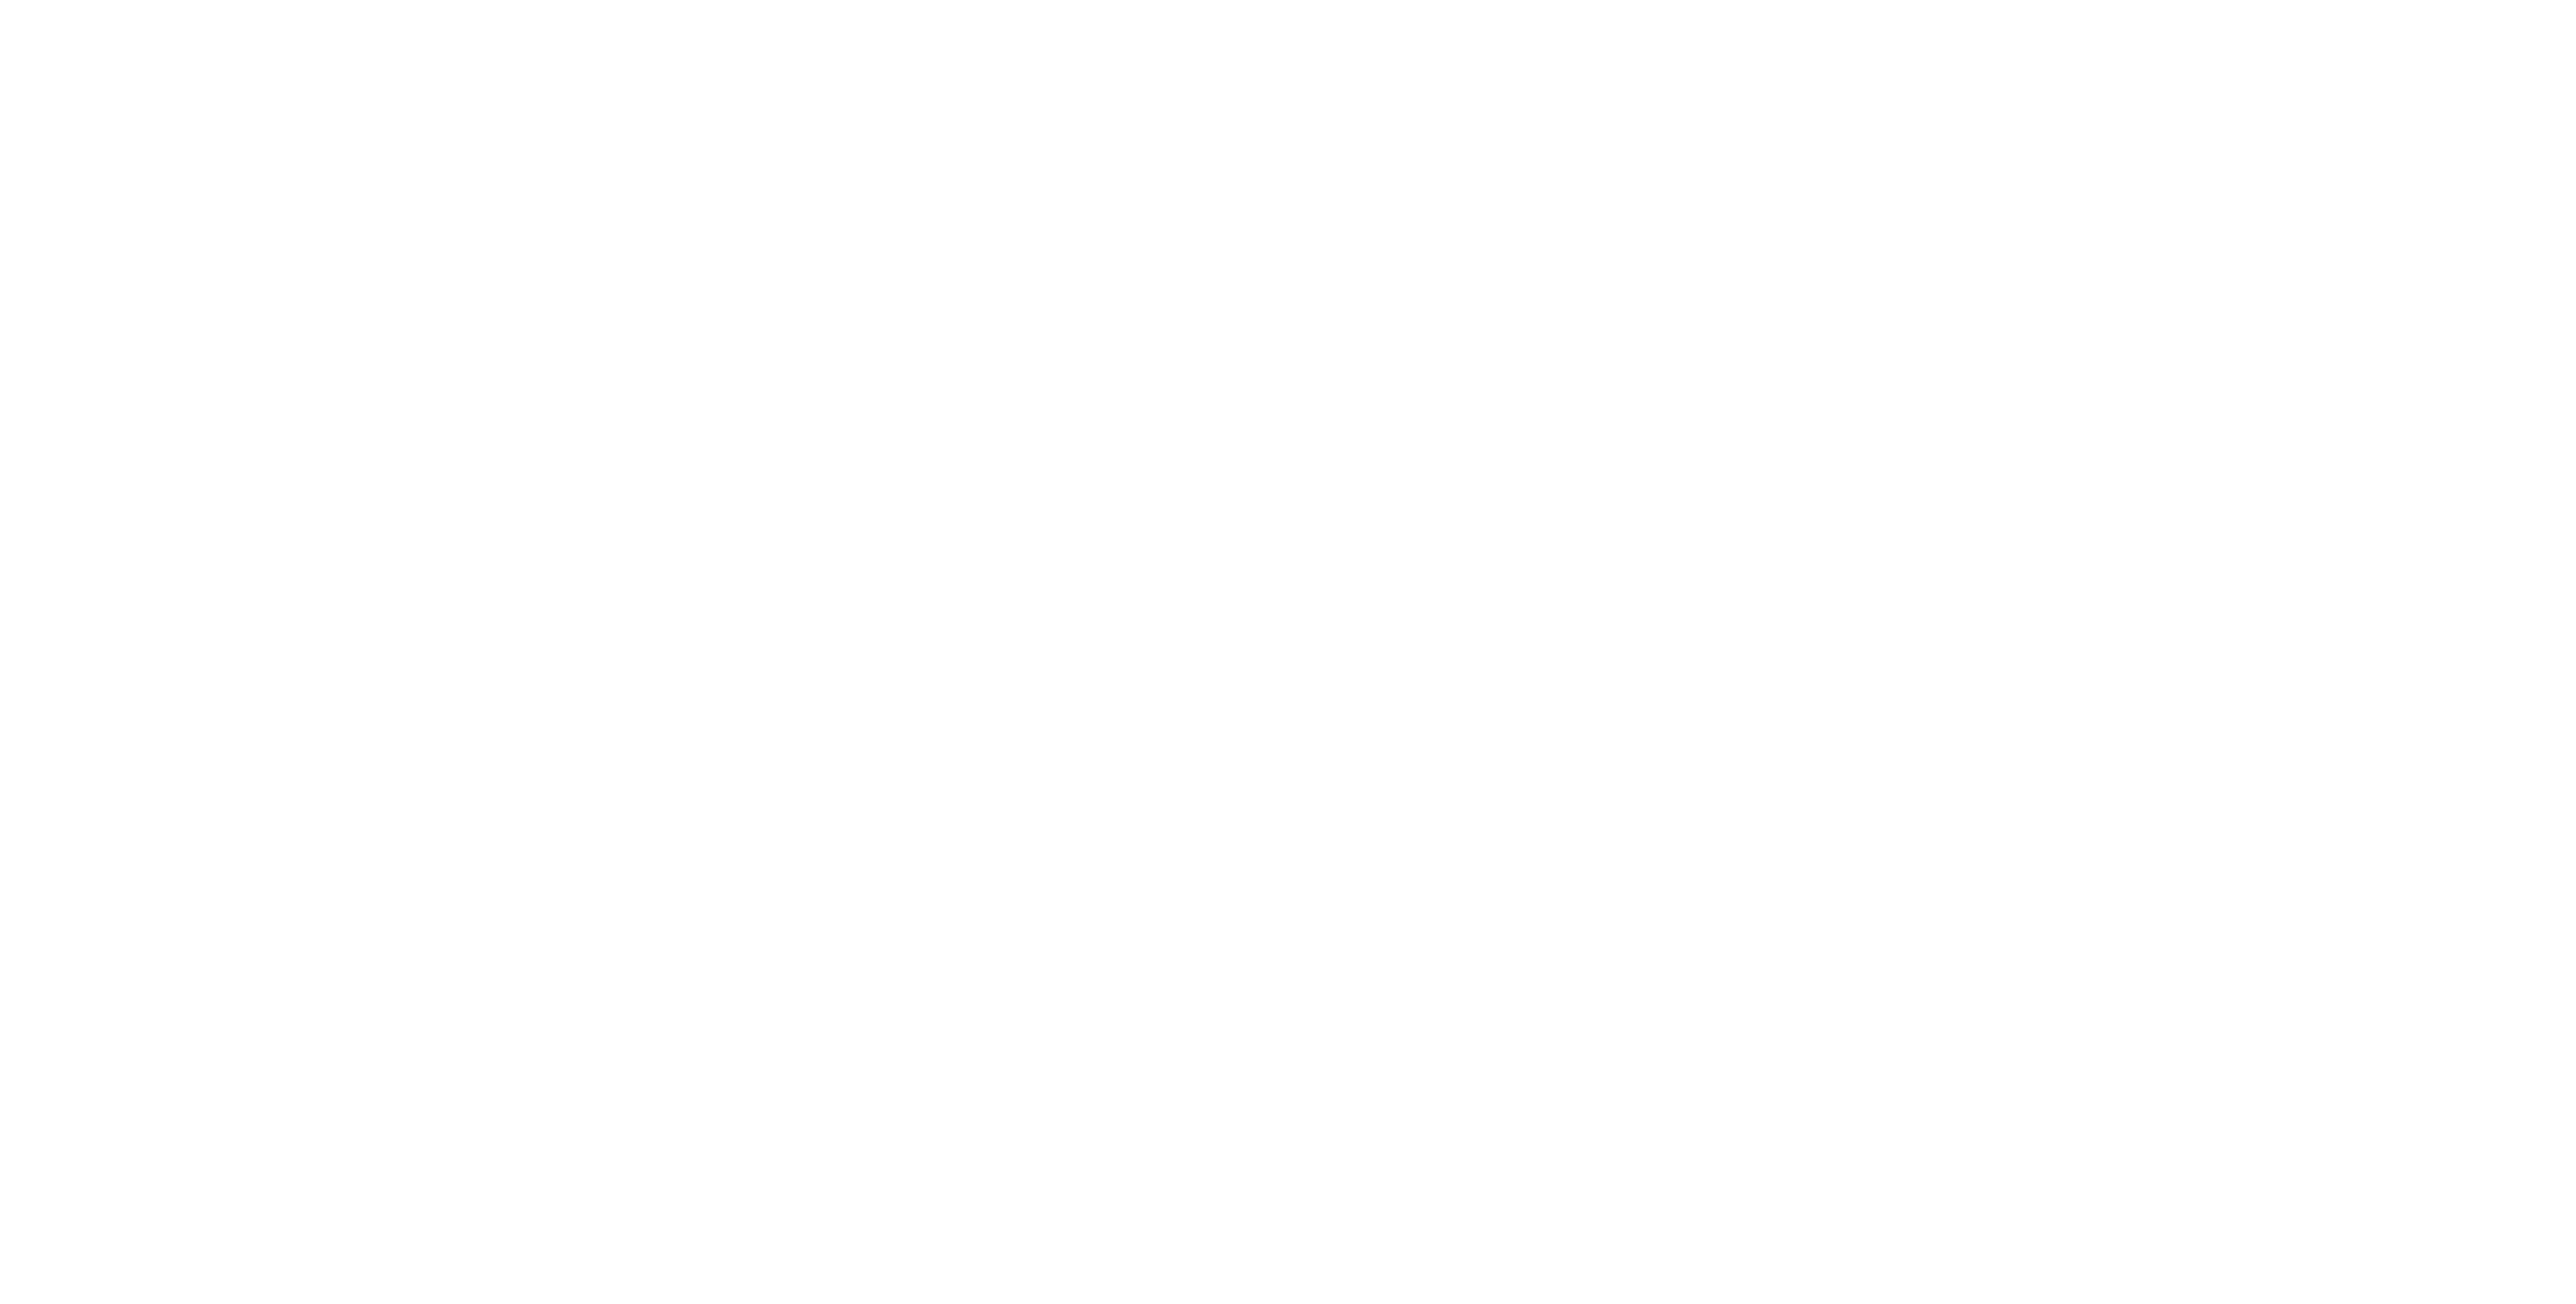 Aluma Steel Tig Rod